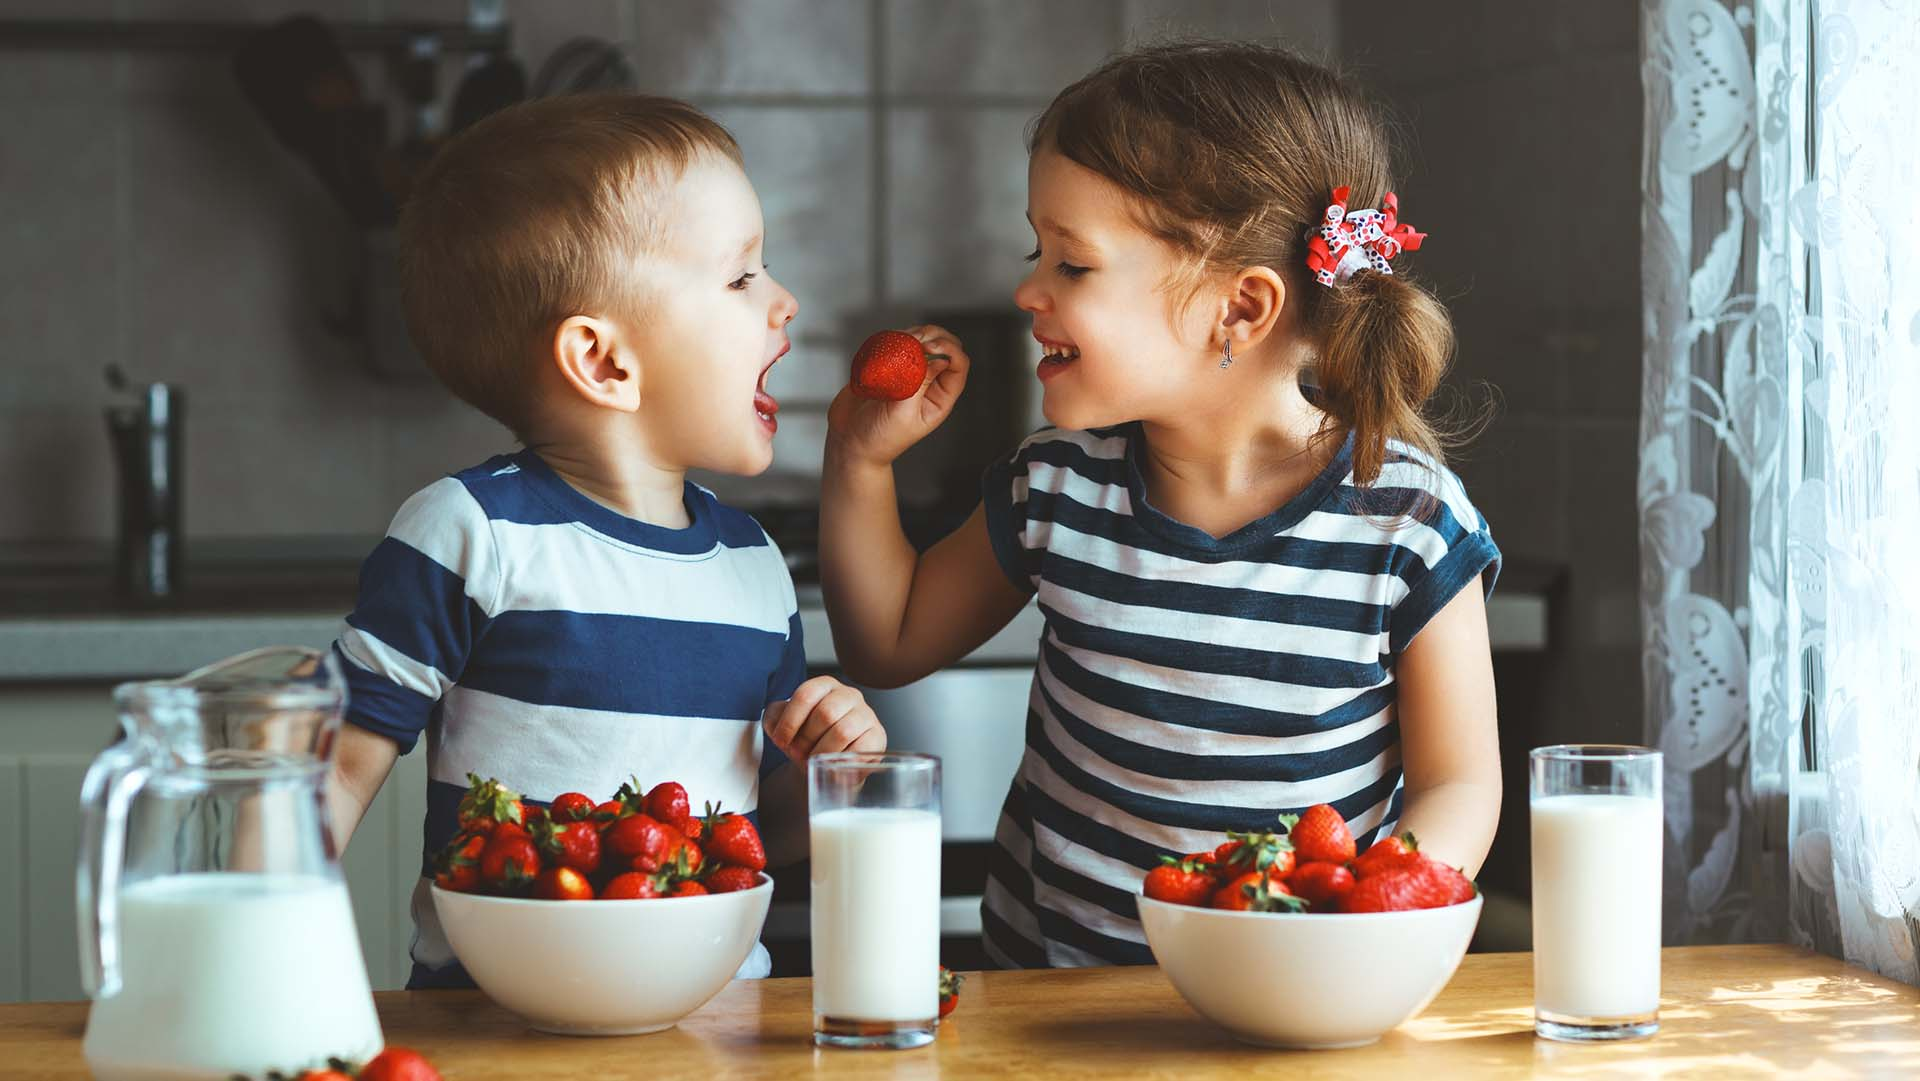 Happy children brother and sister eating strawberries with milk